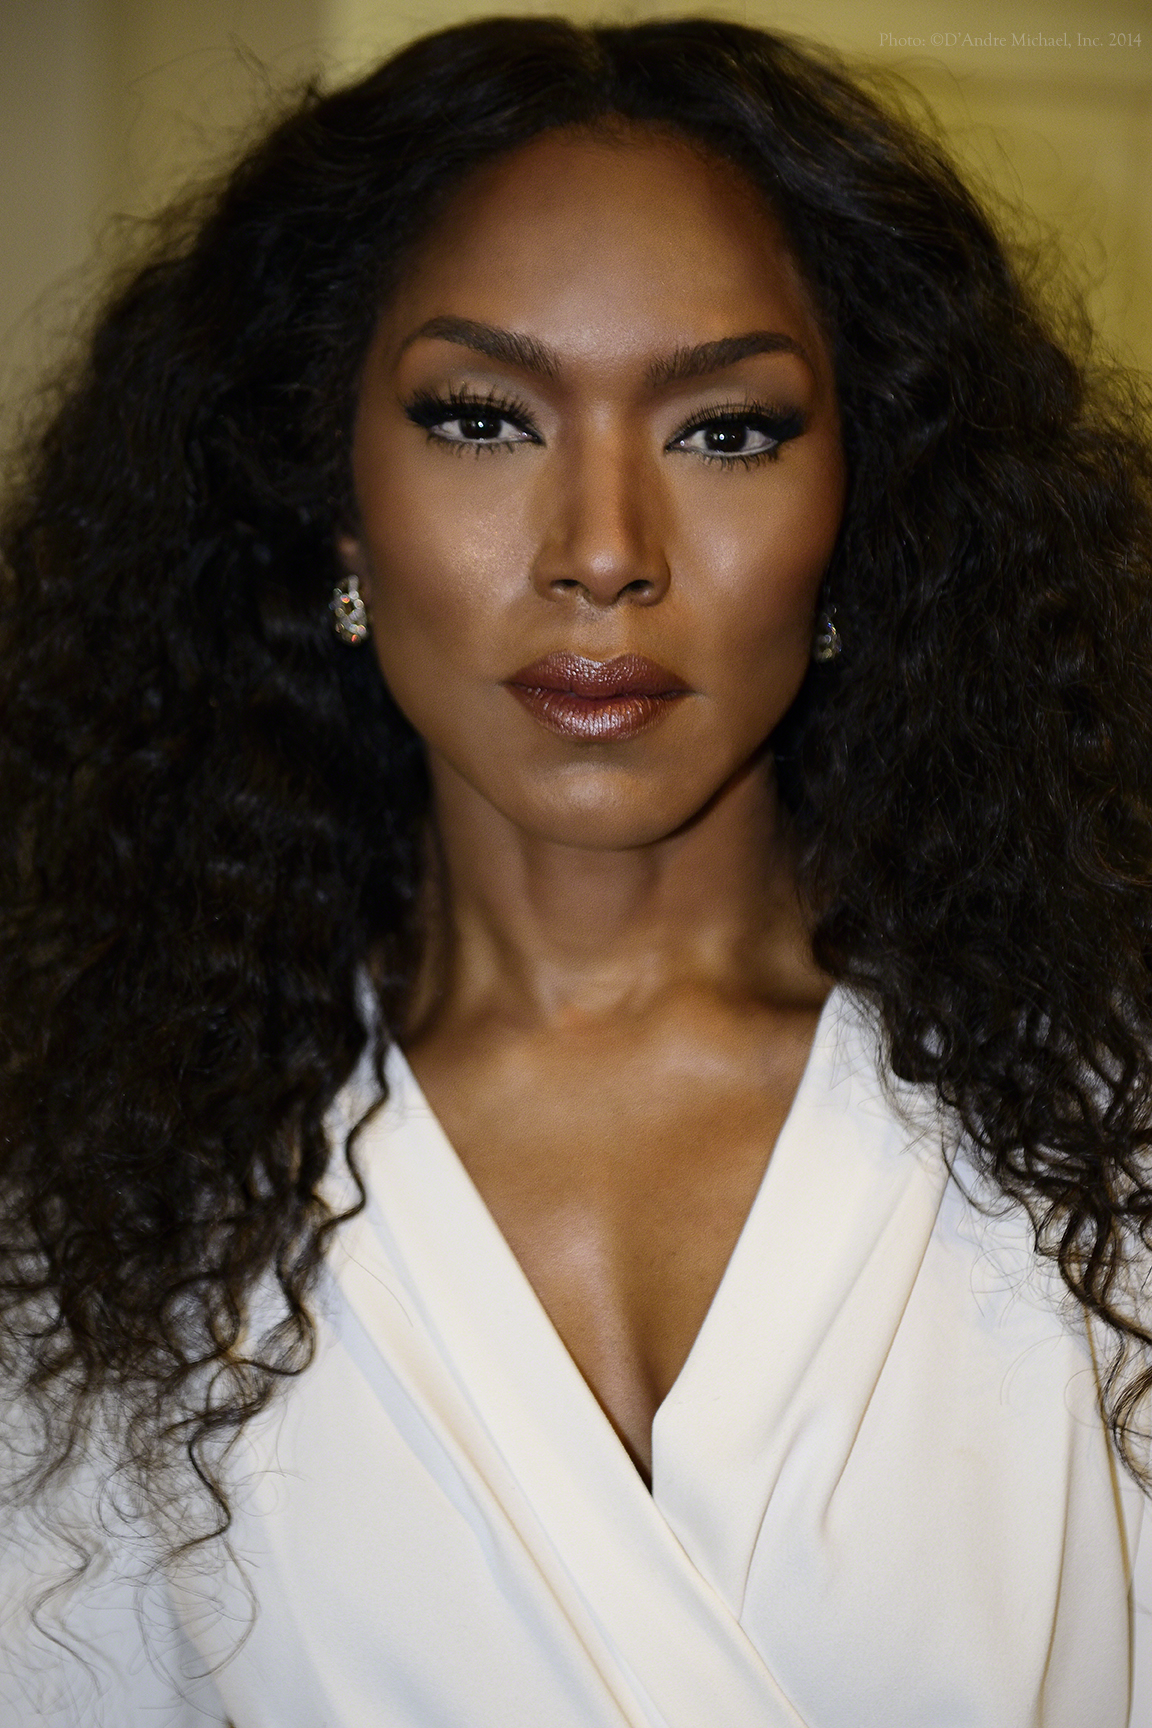 Discussion on this topic: Sarah Woodward, angela-bassett/